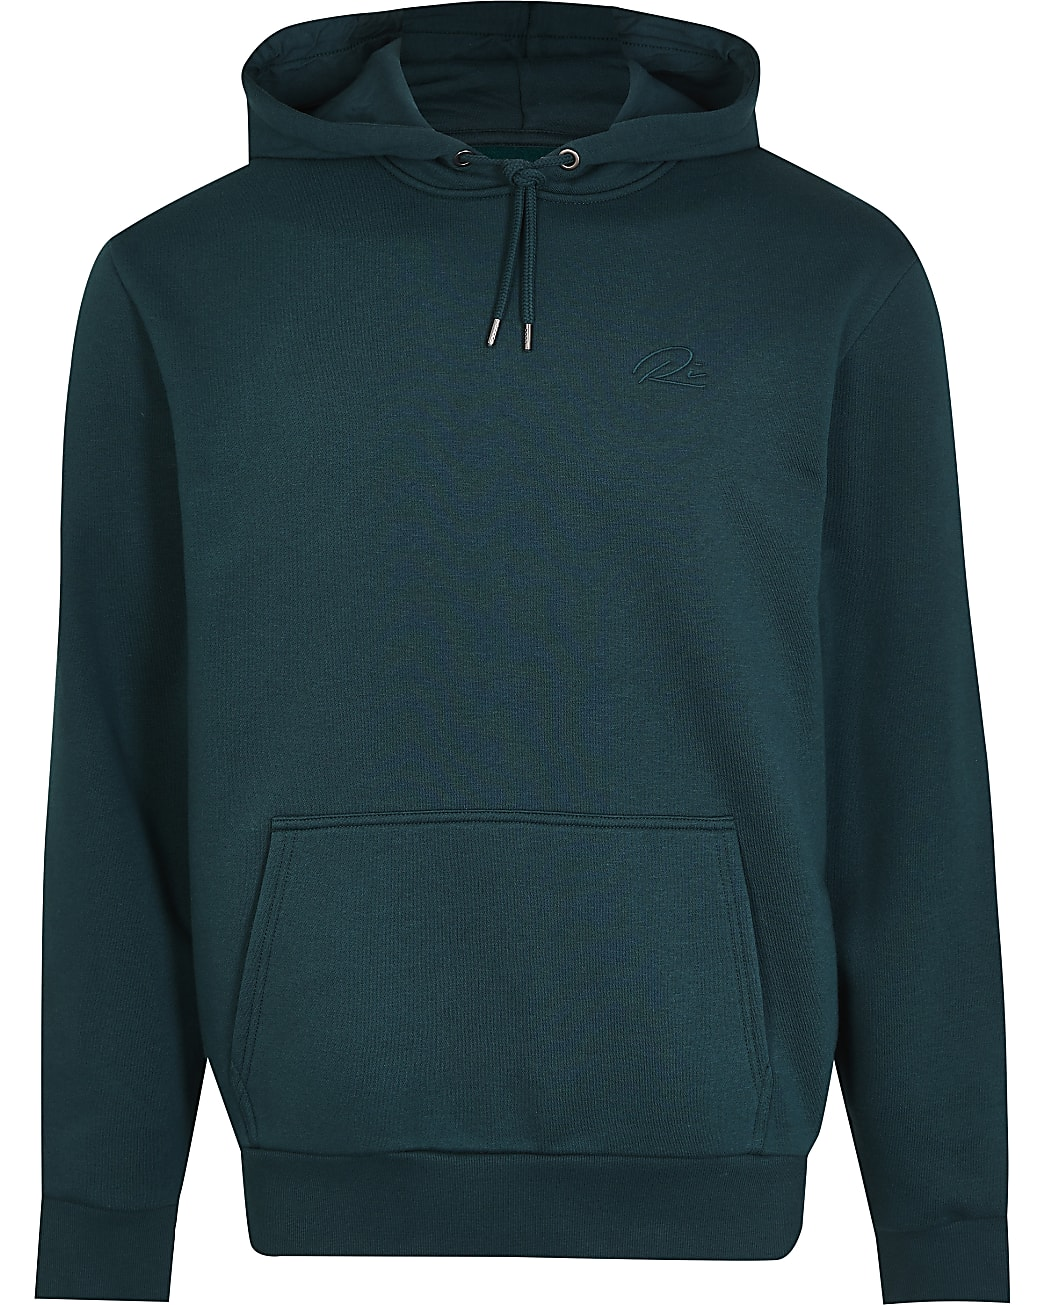 Green RI embroidered regular fit hoodie